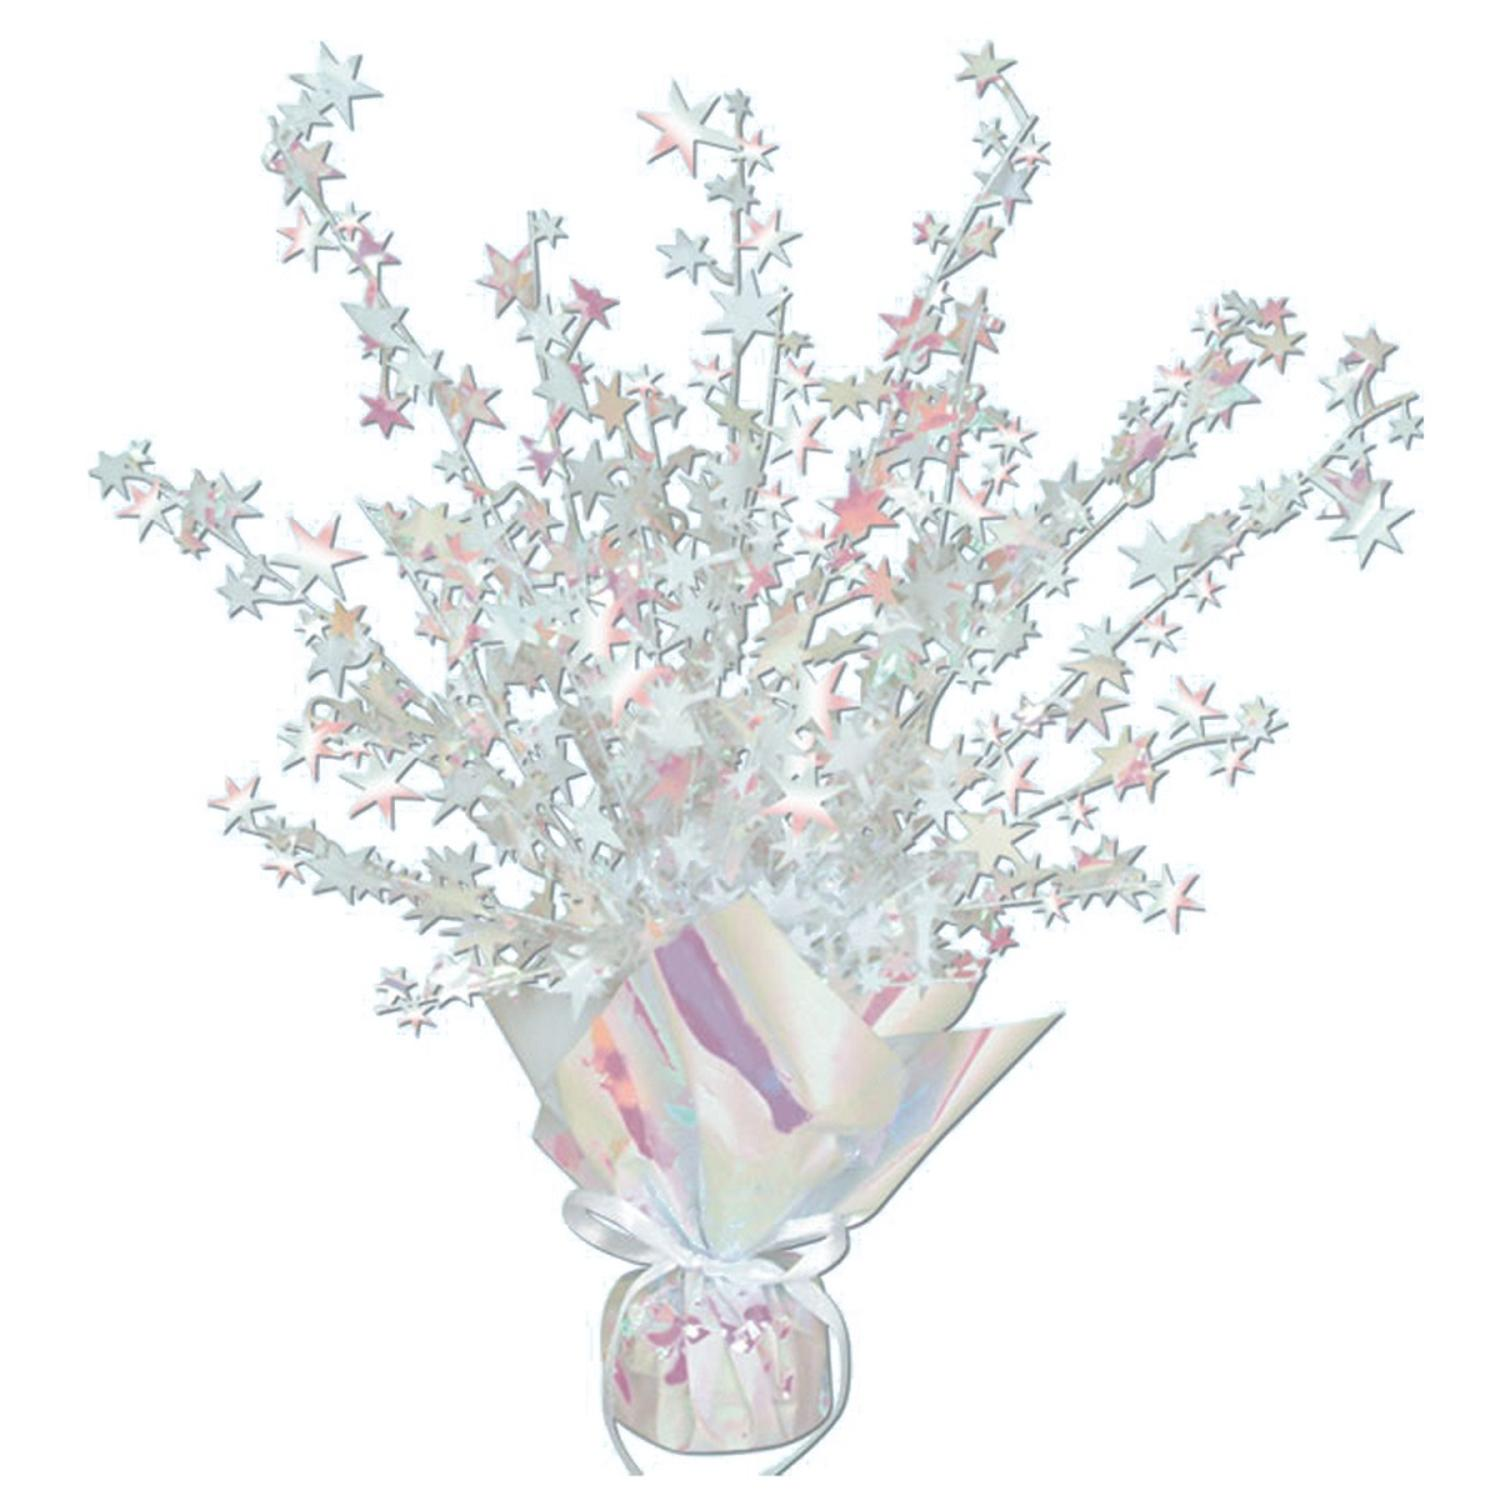 Club Pack of 12 Opalescent Star Gleam 'N Burst Centerpiece Party Decorations 15""